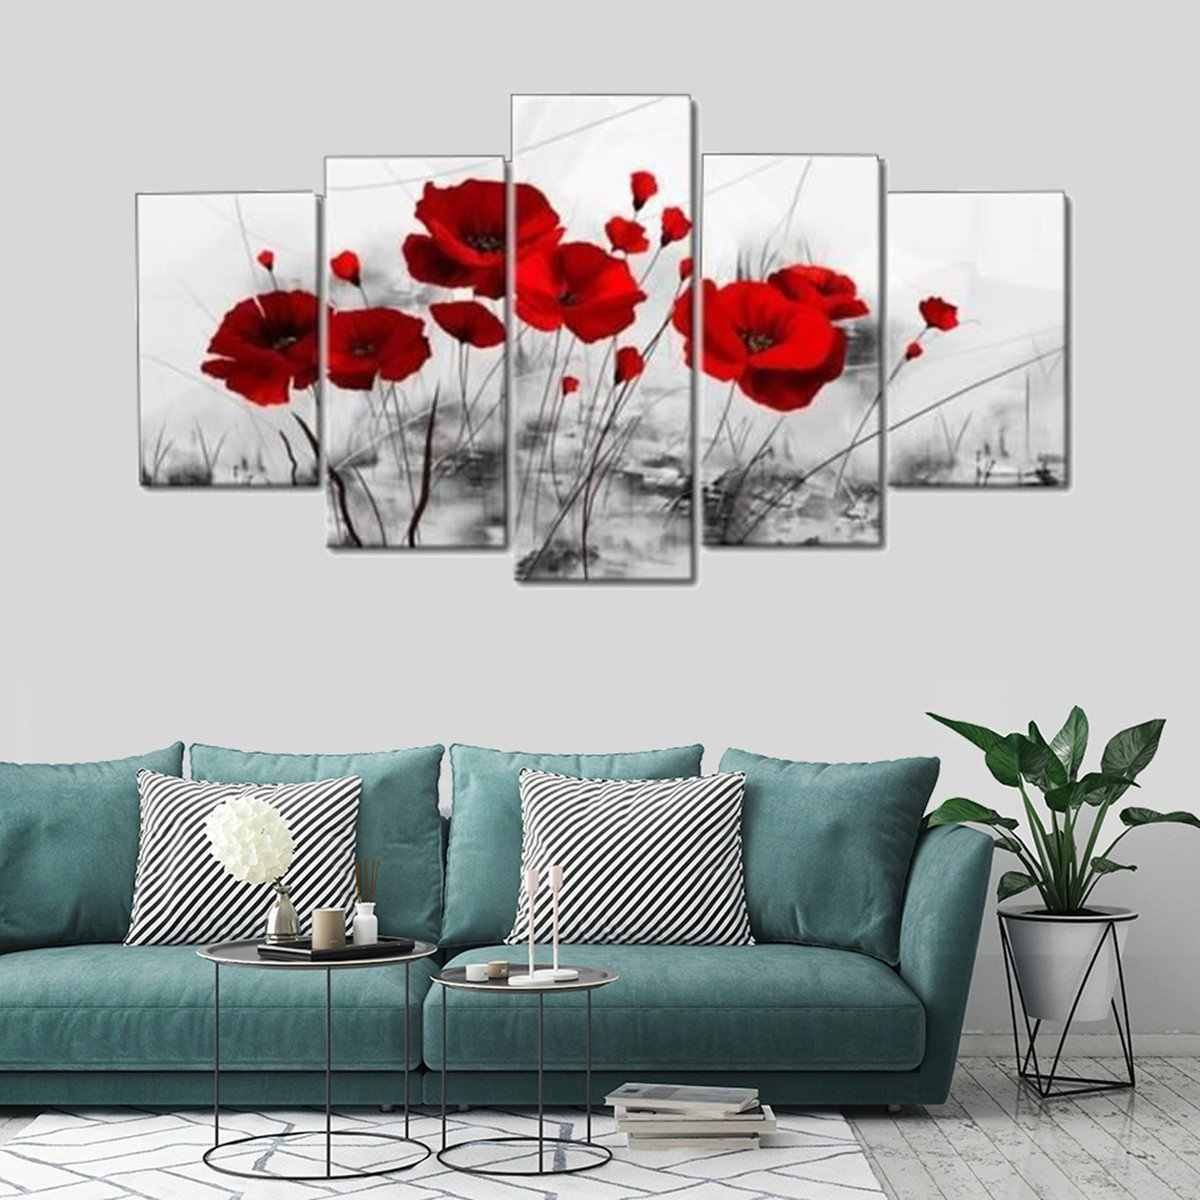 5 Panels Modern Canvas Painting Set Unframed Red Flowers Wall Art Picture Murals Poster Home Living Room Decoration Crafts